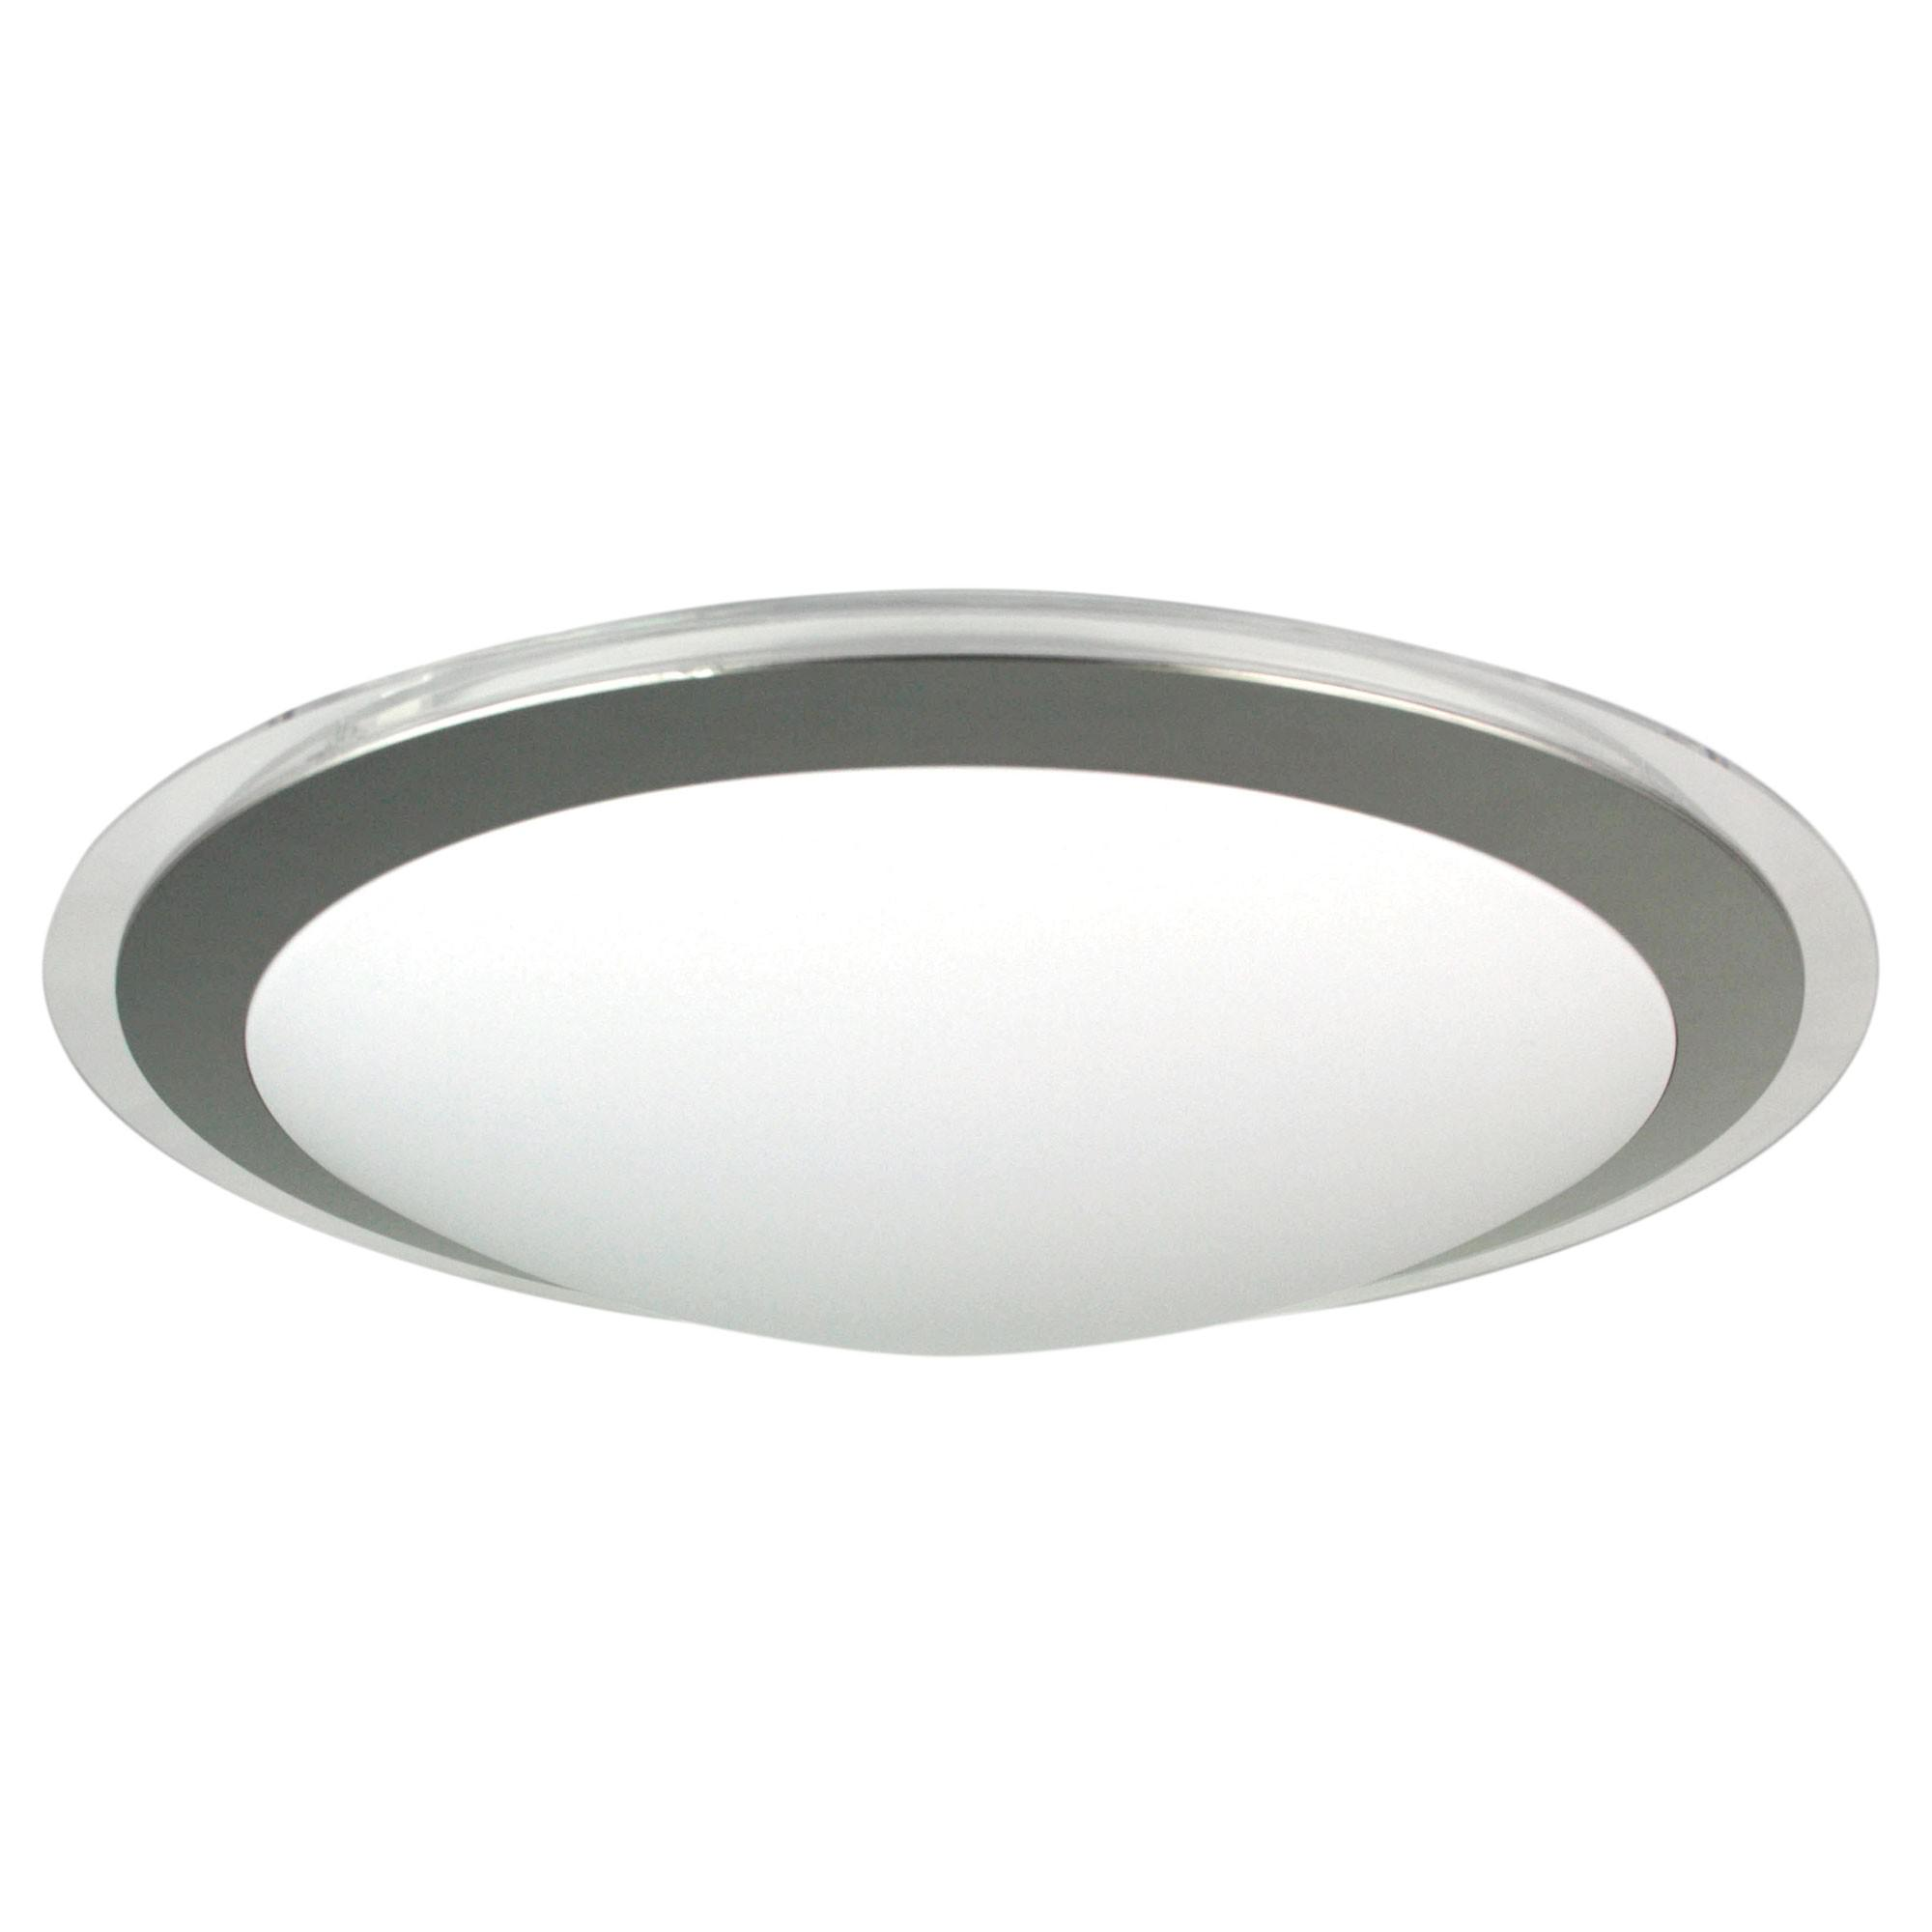 Vello LED Oyster Light, 4000K, 45cm